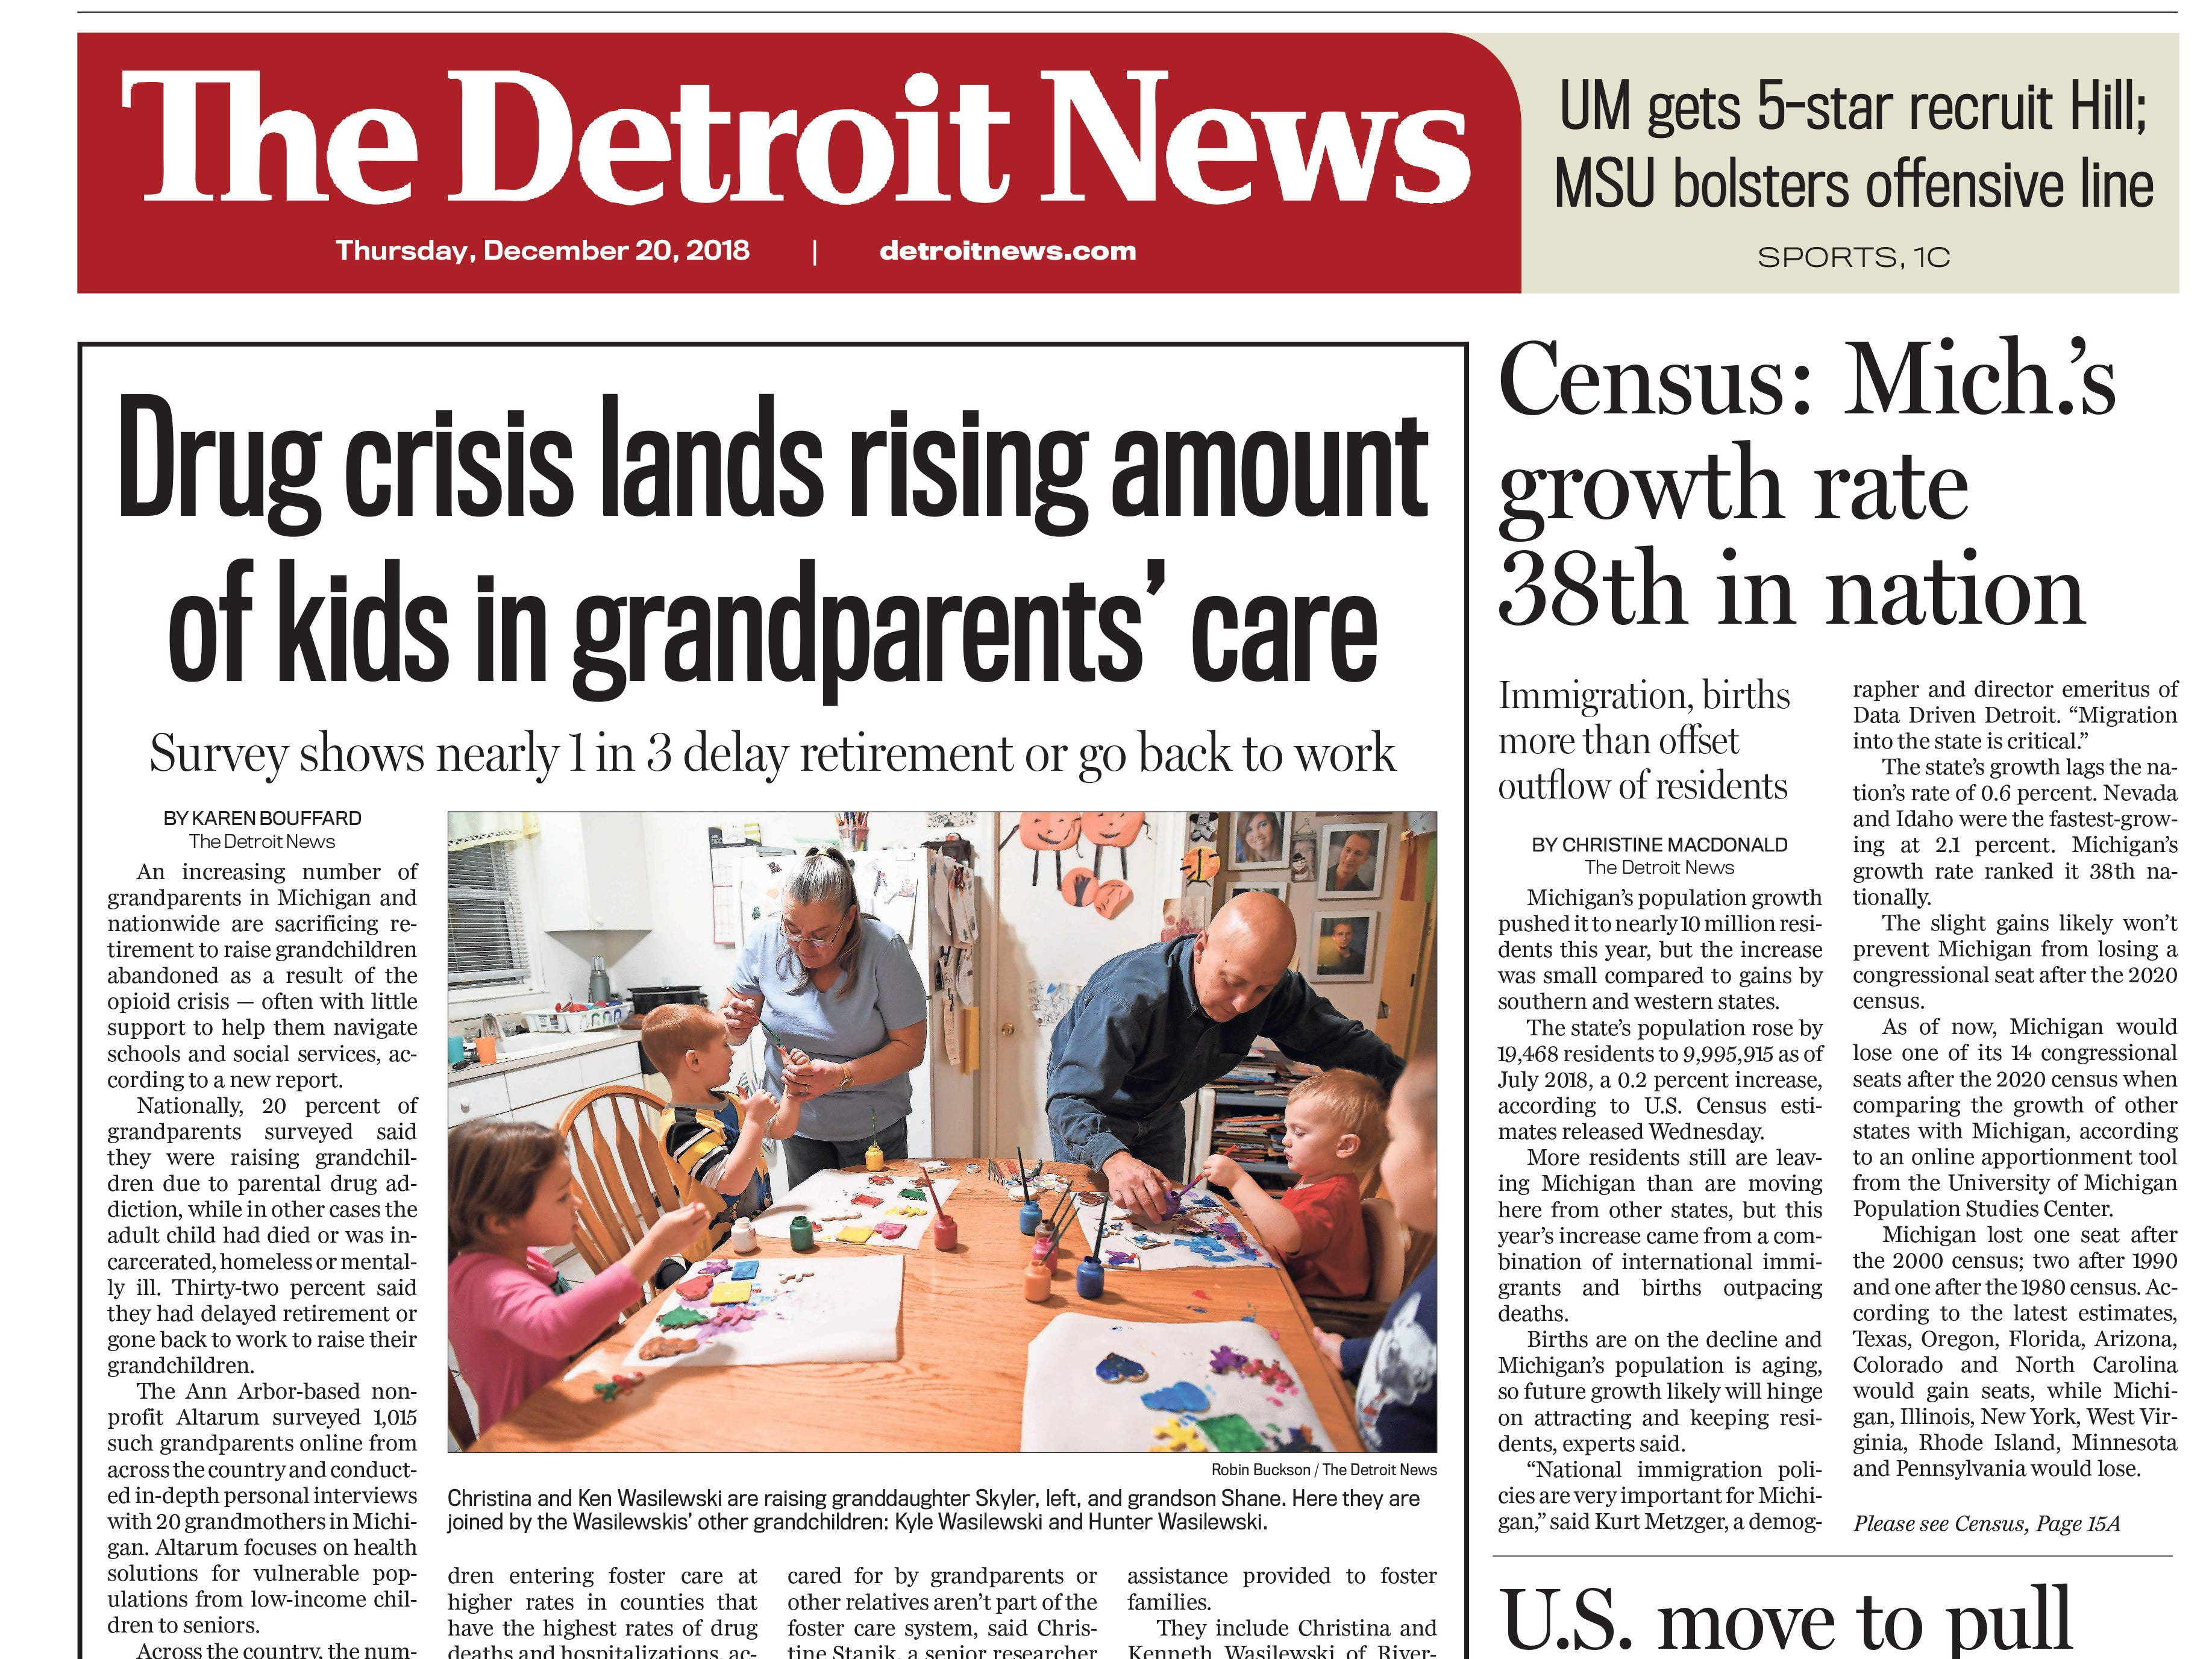 The front page of the Detroit News on Thursday, December 20, 2018.